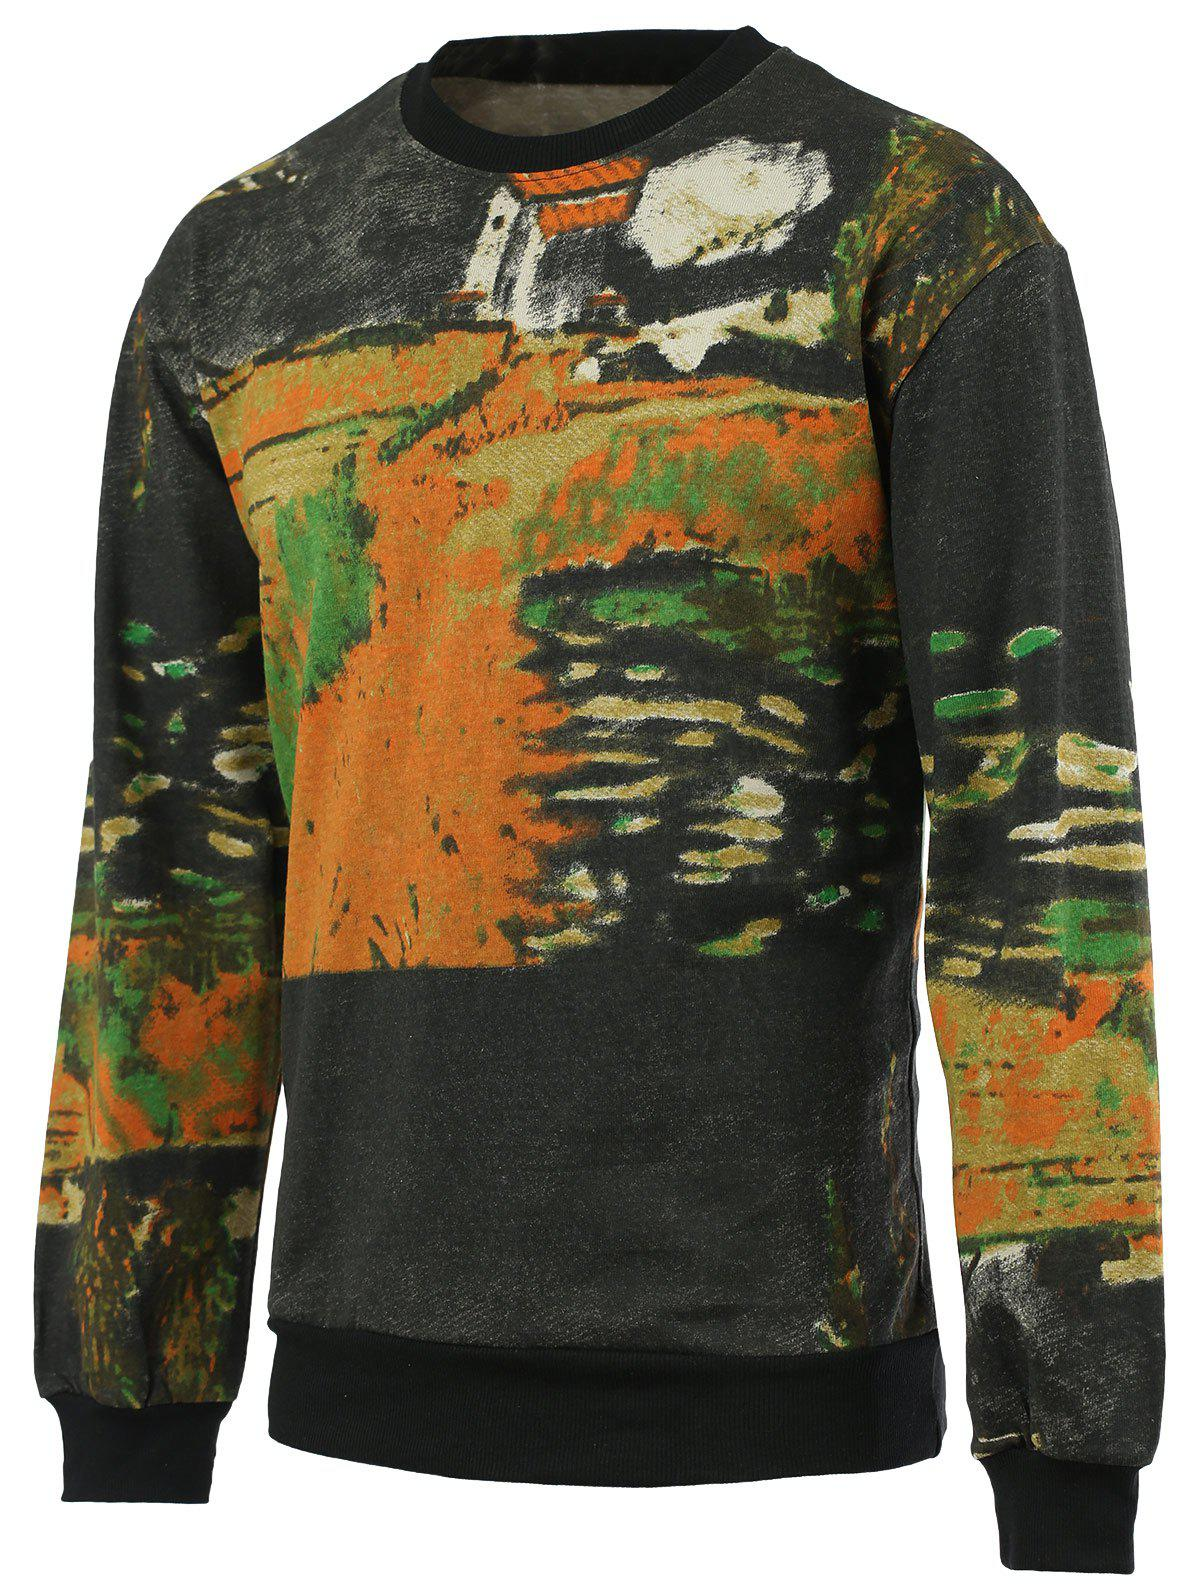 Chic Painting Print Round Neck Long Sleeves Sweatshirt For Men